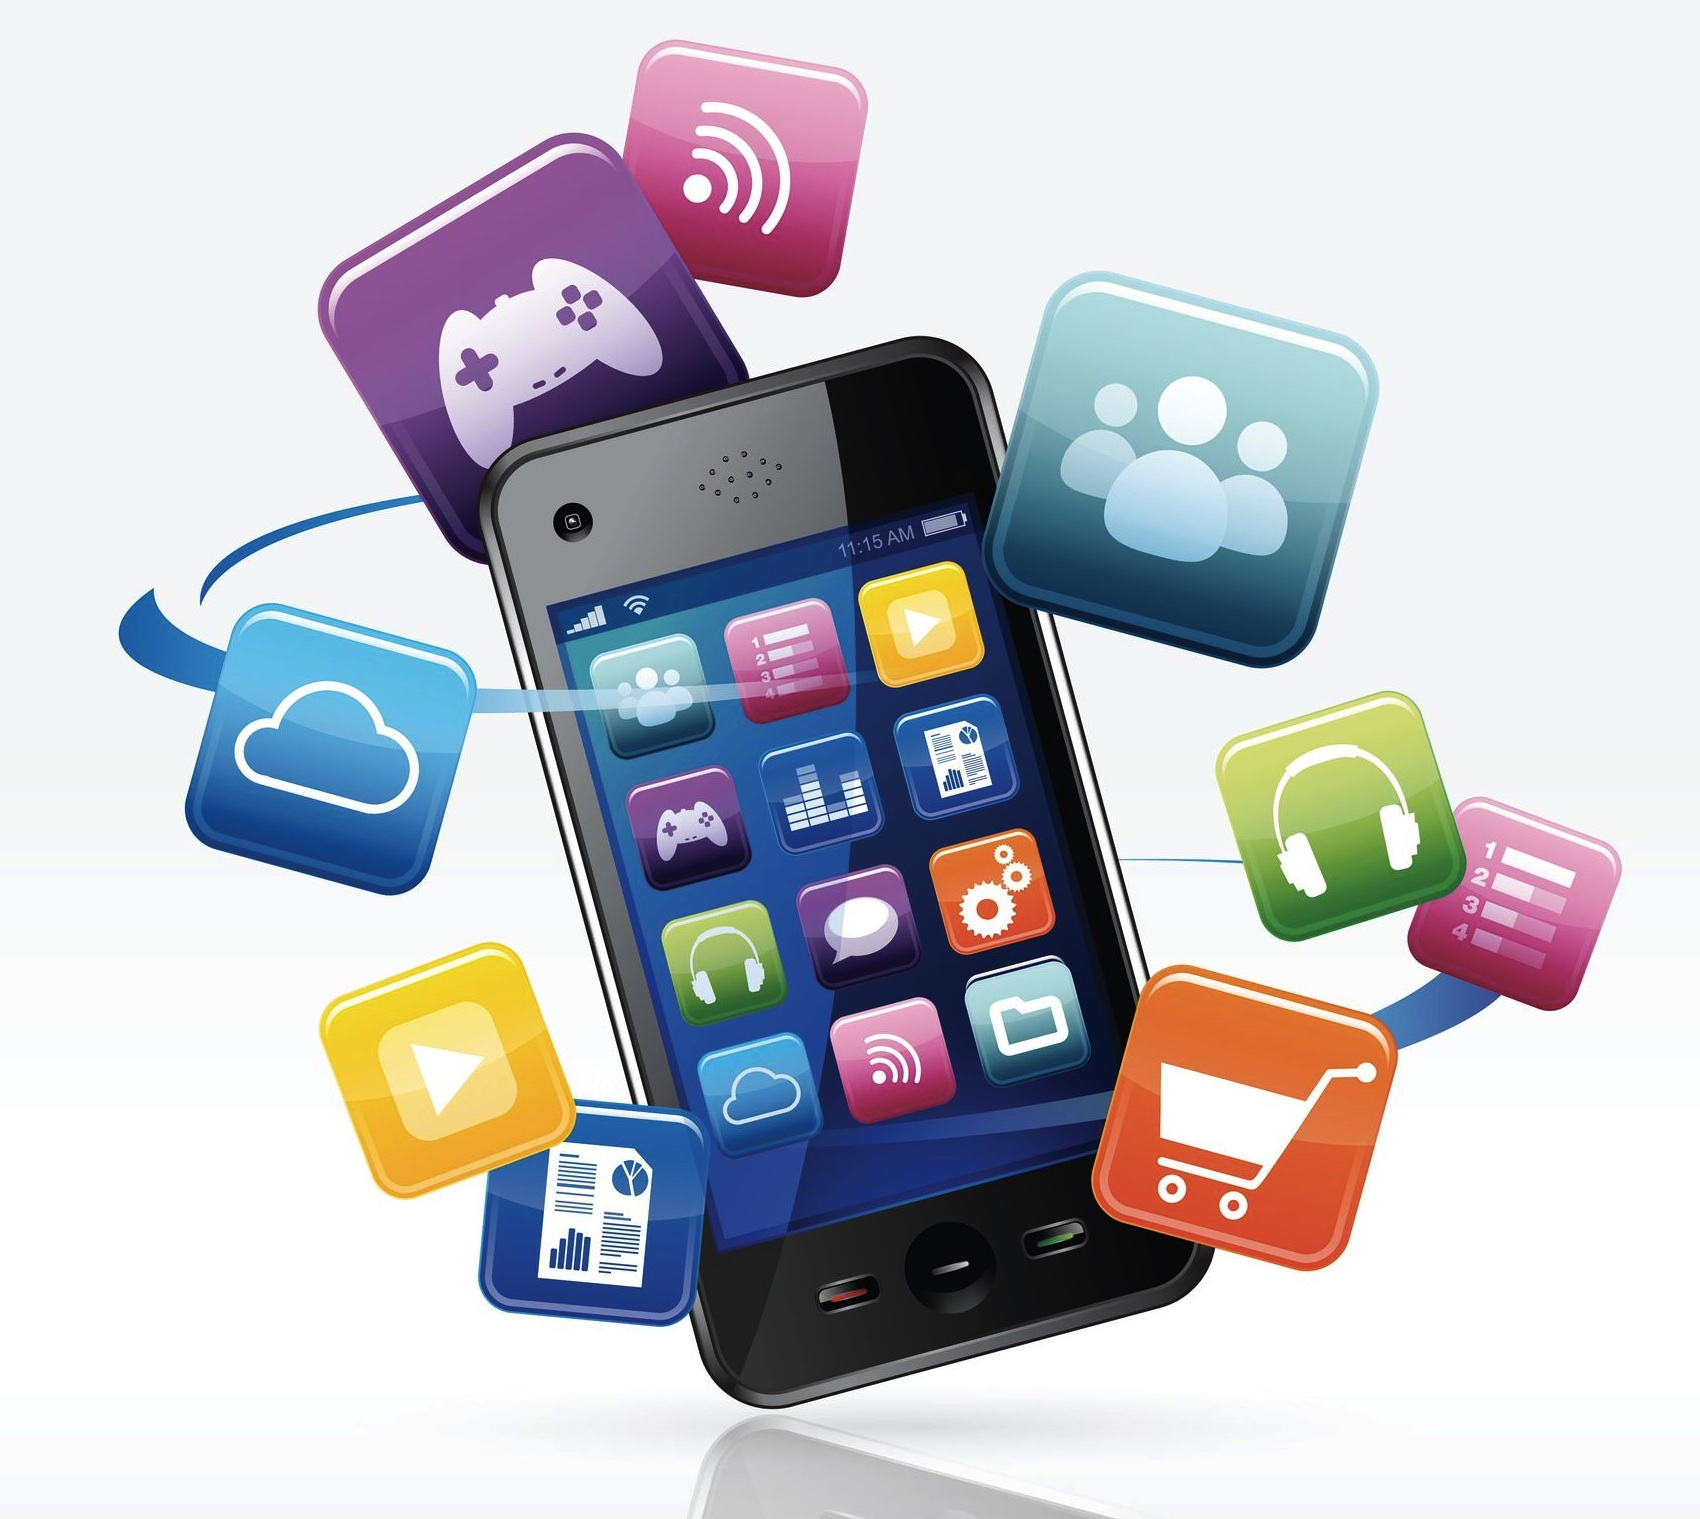 mobile marketing Want to know about mobile web traffic, trends, and mobile usage statistics see 60+ of most recent mobile marketing statistics here.